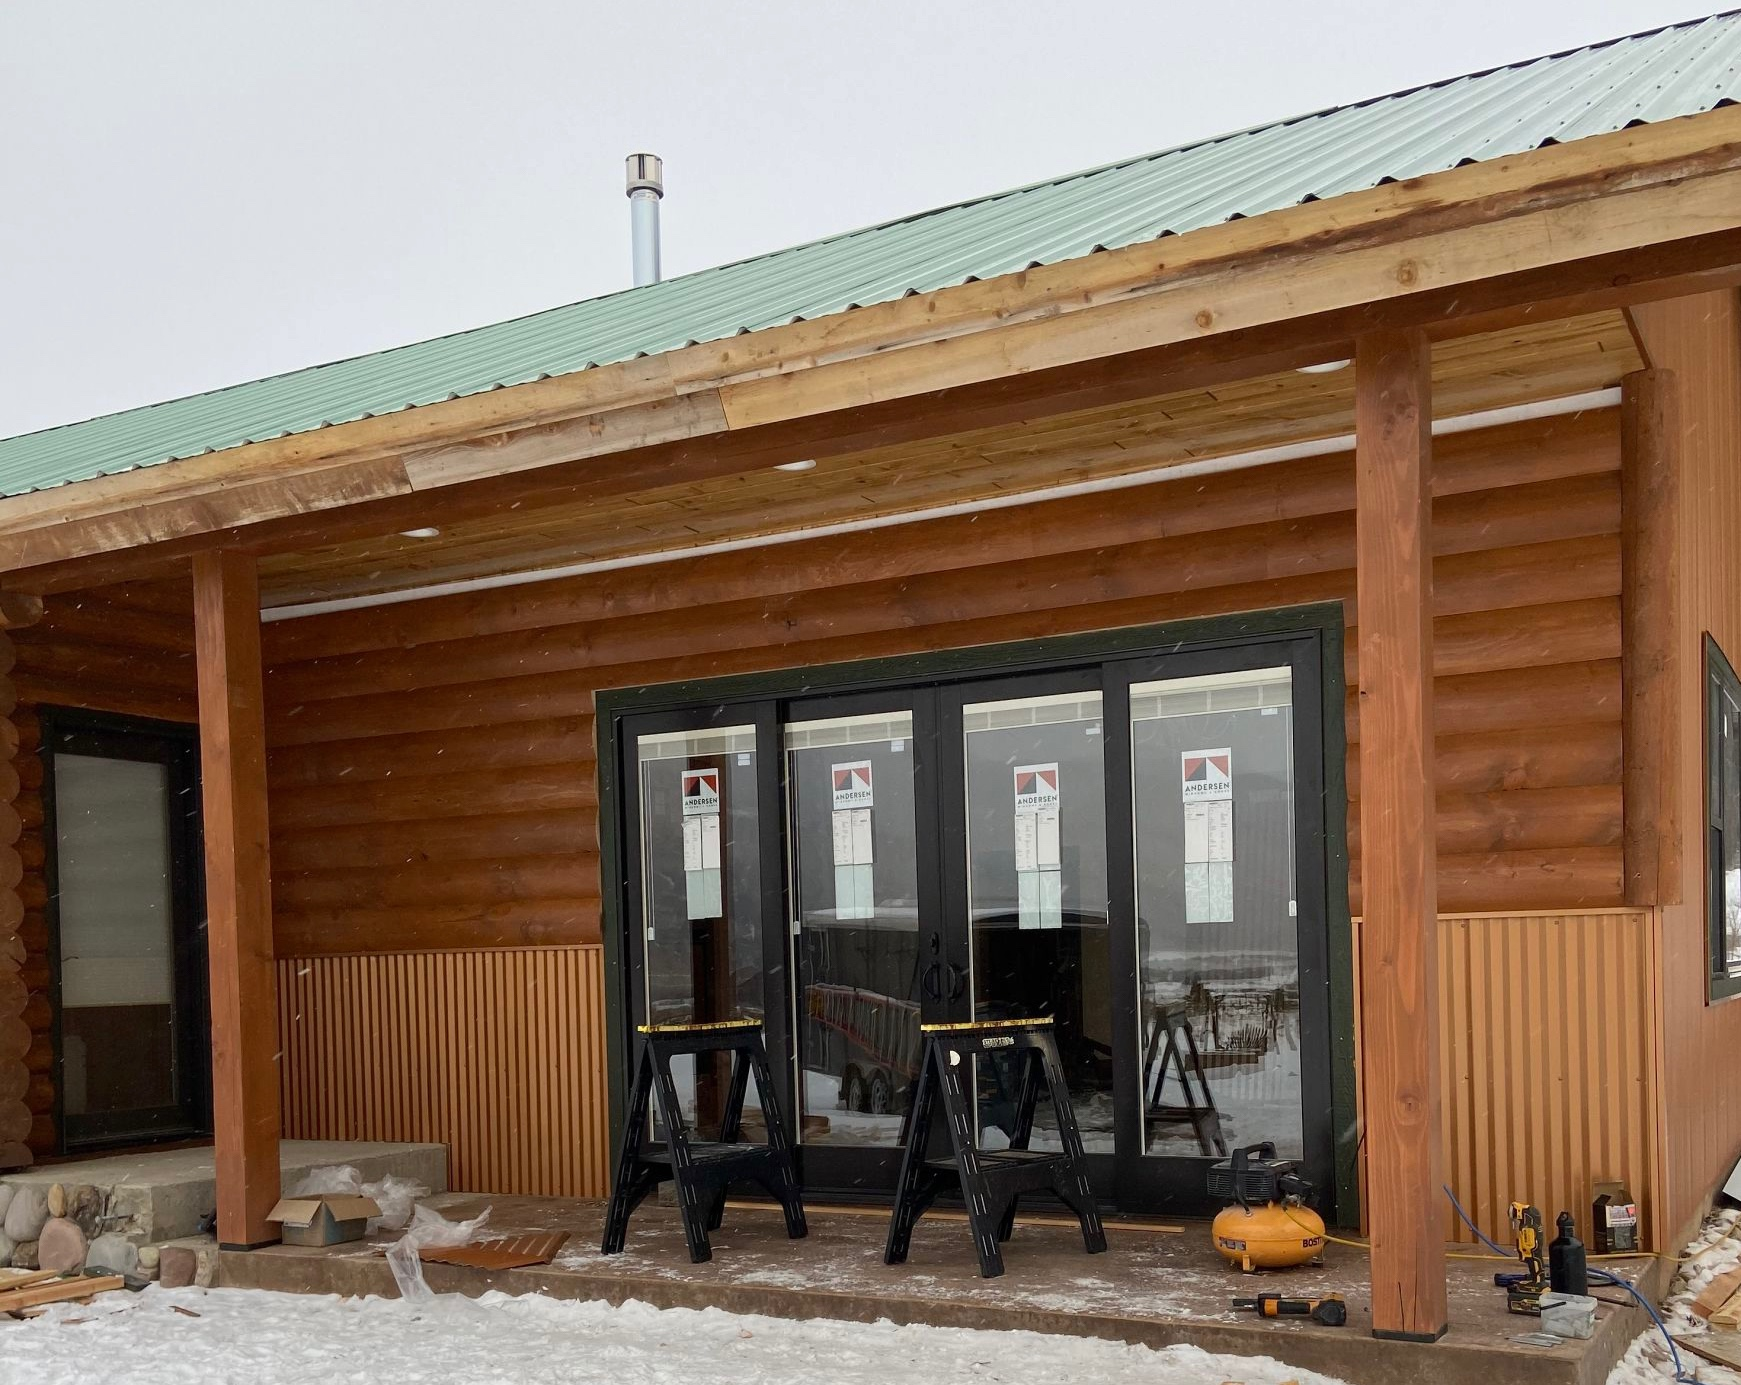 Construction contractor remodel remodeling cabin Montana Butte